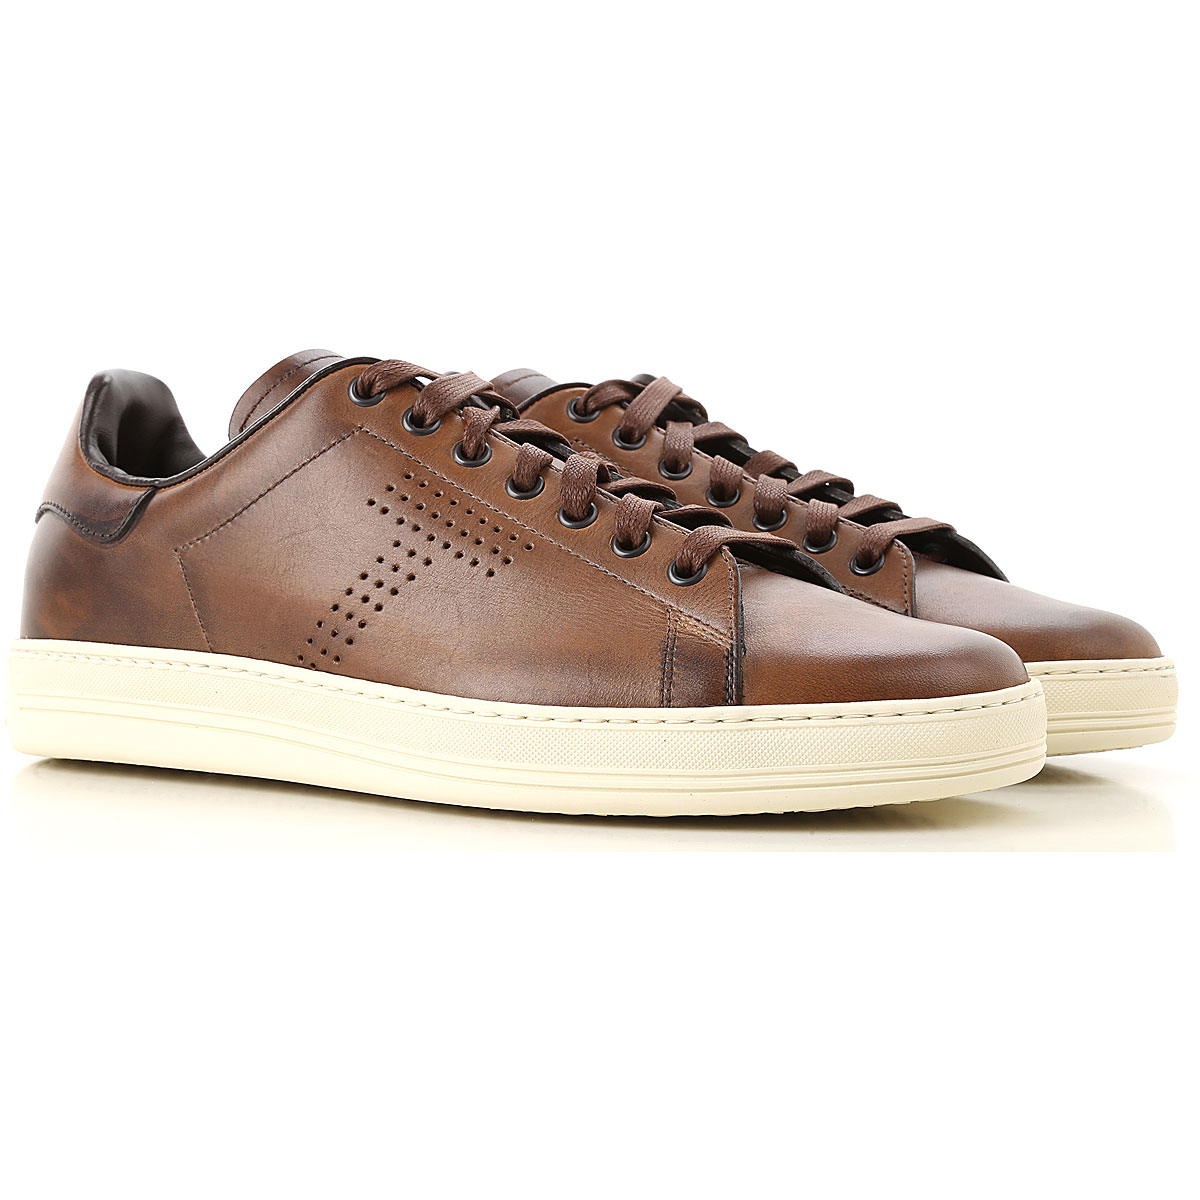 Image of Tom Ford Sneakers for Men, Brown, Leather, 2017, 10 10.5 7 8 9.5